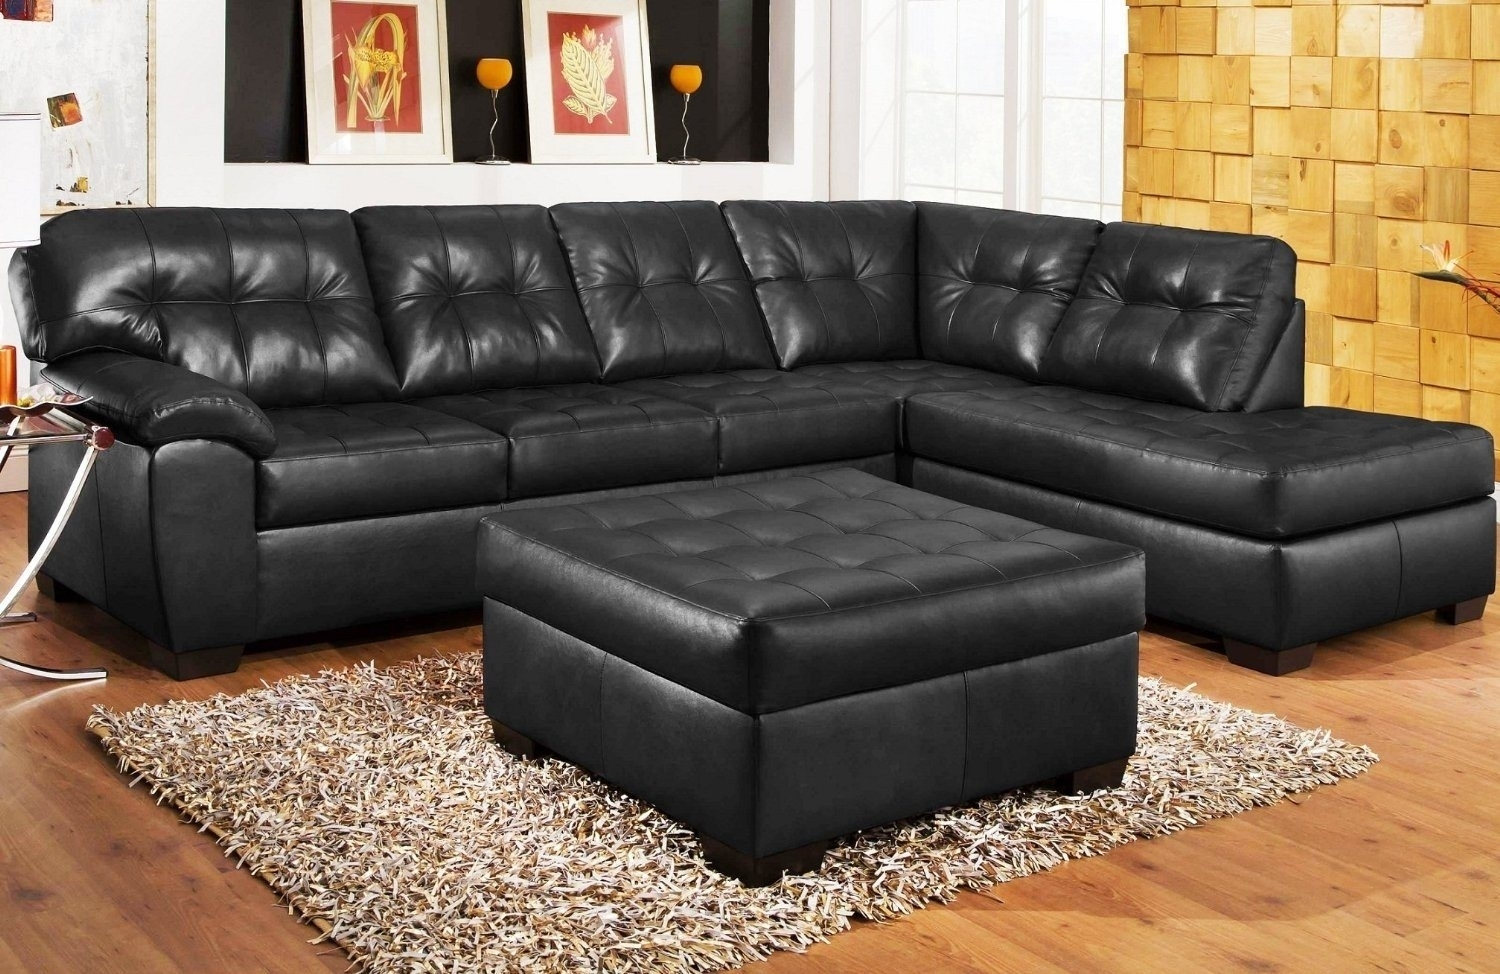 Collection Macys Leather Sectional Sofa – Mediasupload Within Macys Leather Sectional Sofas (View 7 of 10)